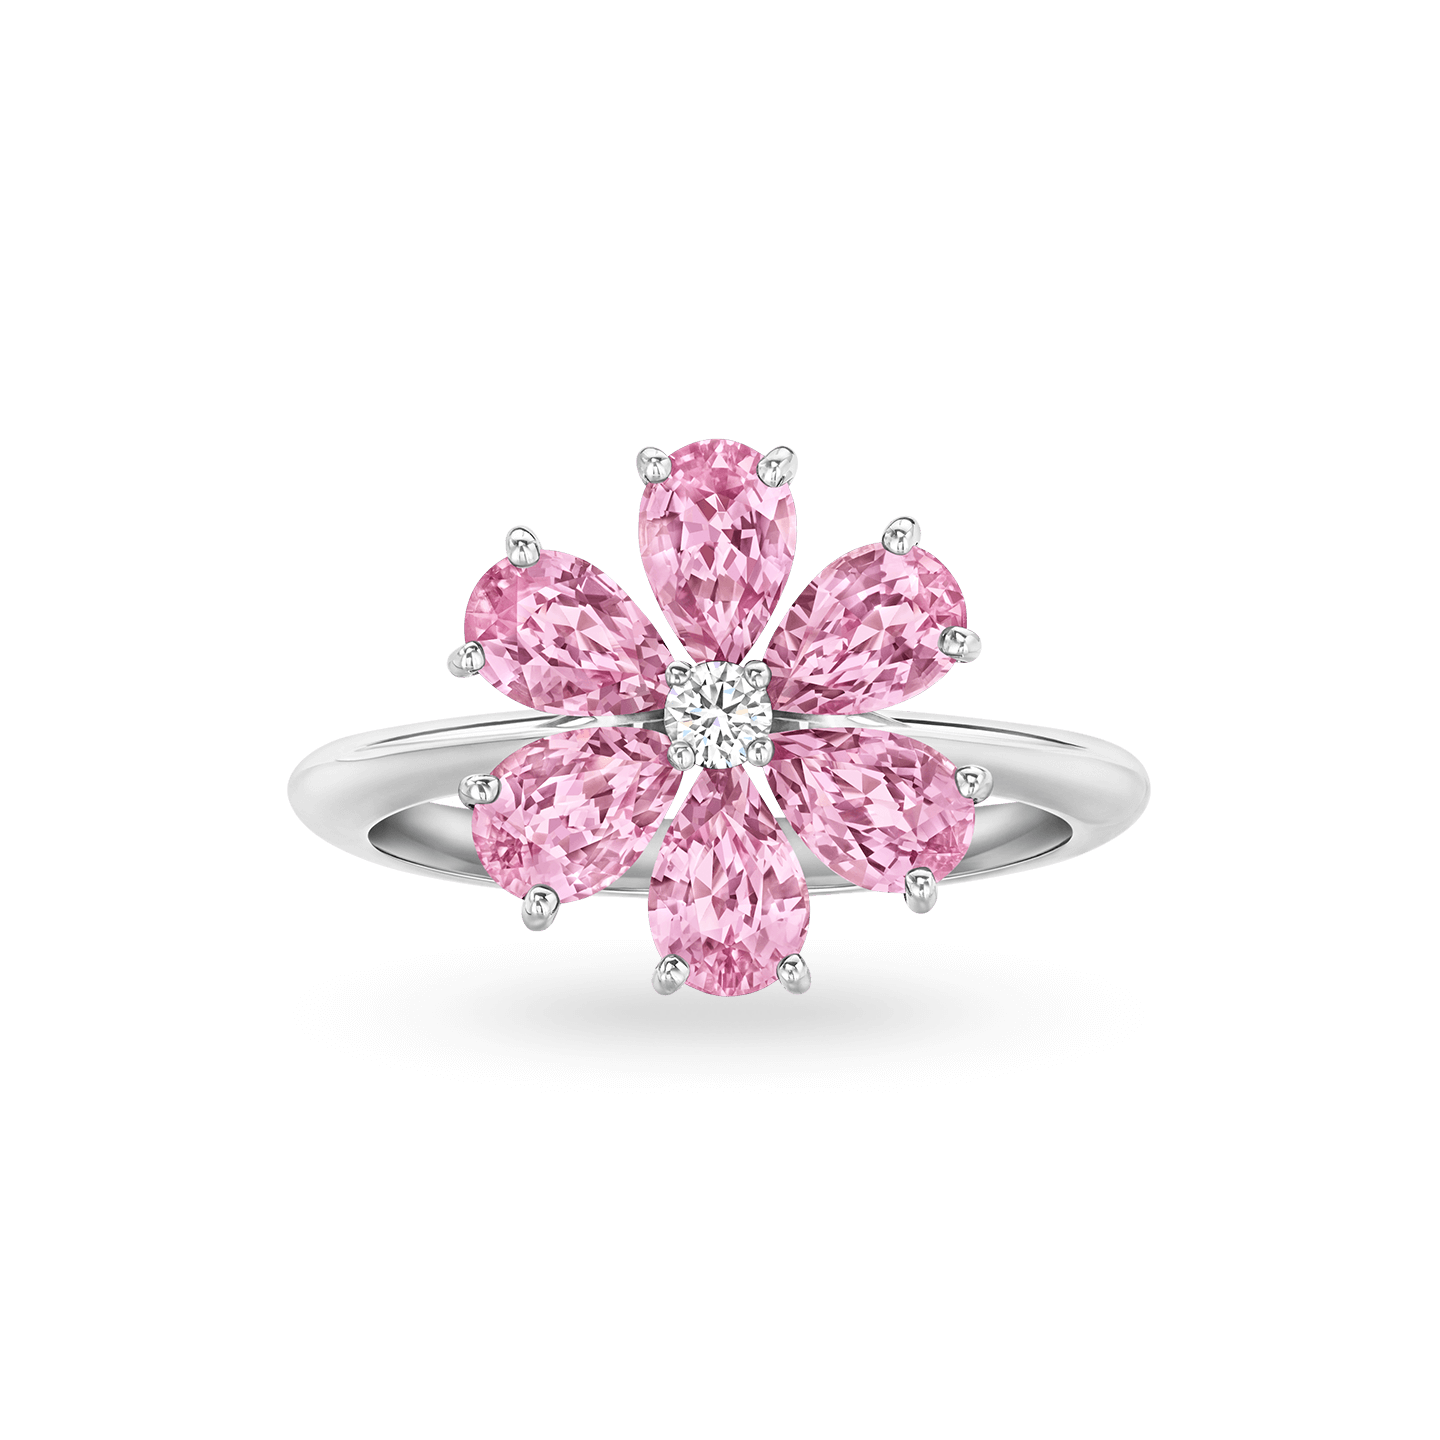 Forget-Me-Not Pink Sapphire and Diamond Ring, Product Image 1